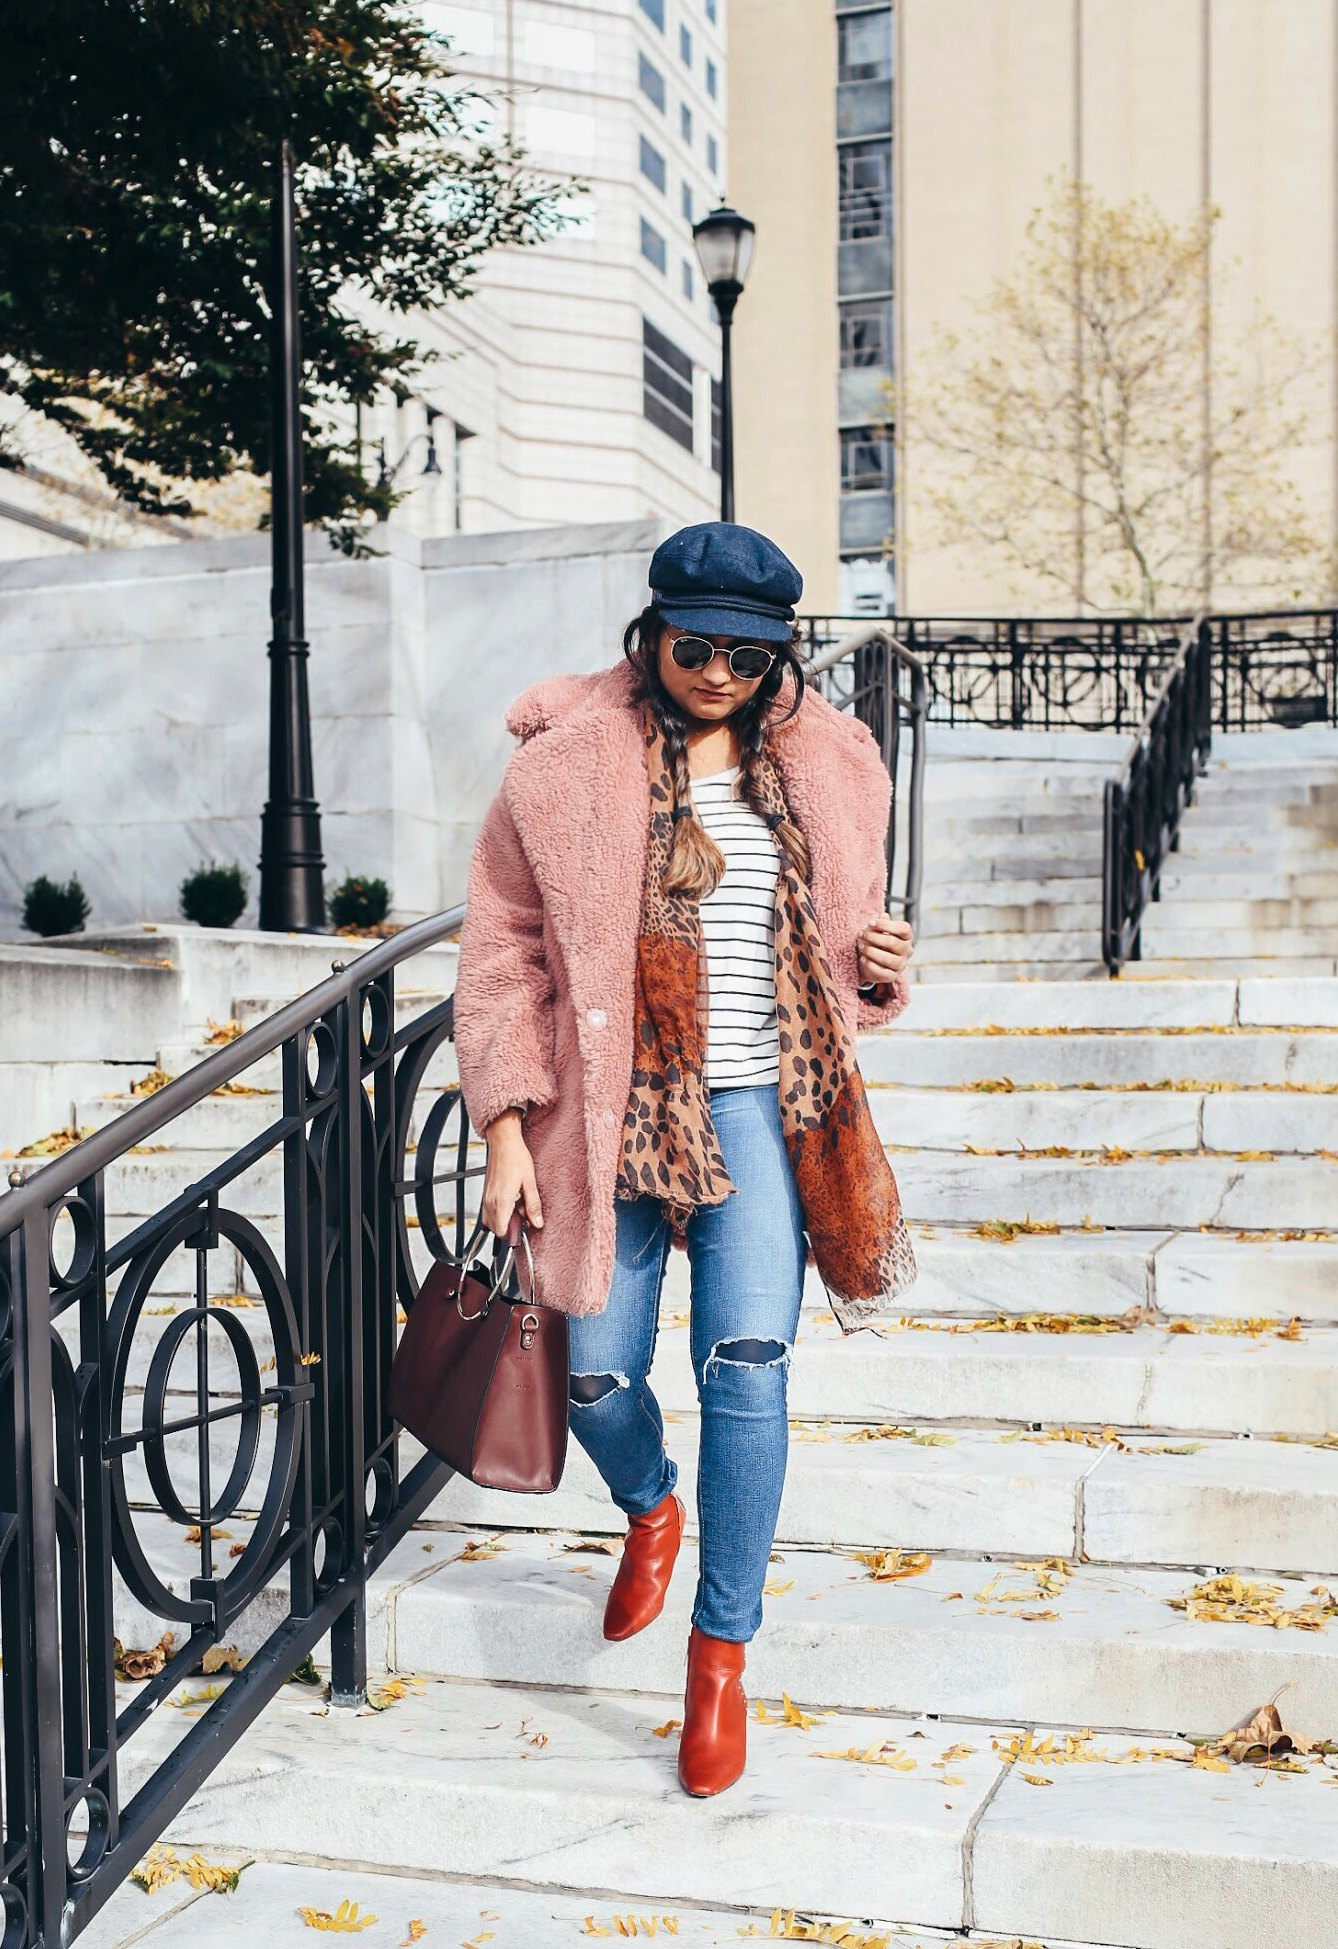 Lifestyle Blogger Surekha of dreaming wearing Ag distressed Ankle Skinny Jeans - Top Winter Coat Trends featured by popular Ohio modest fashion blogger, Dreaming Loud